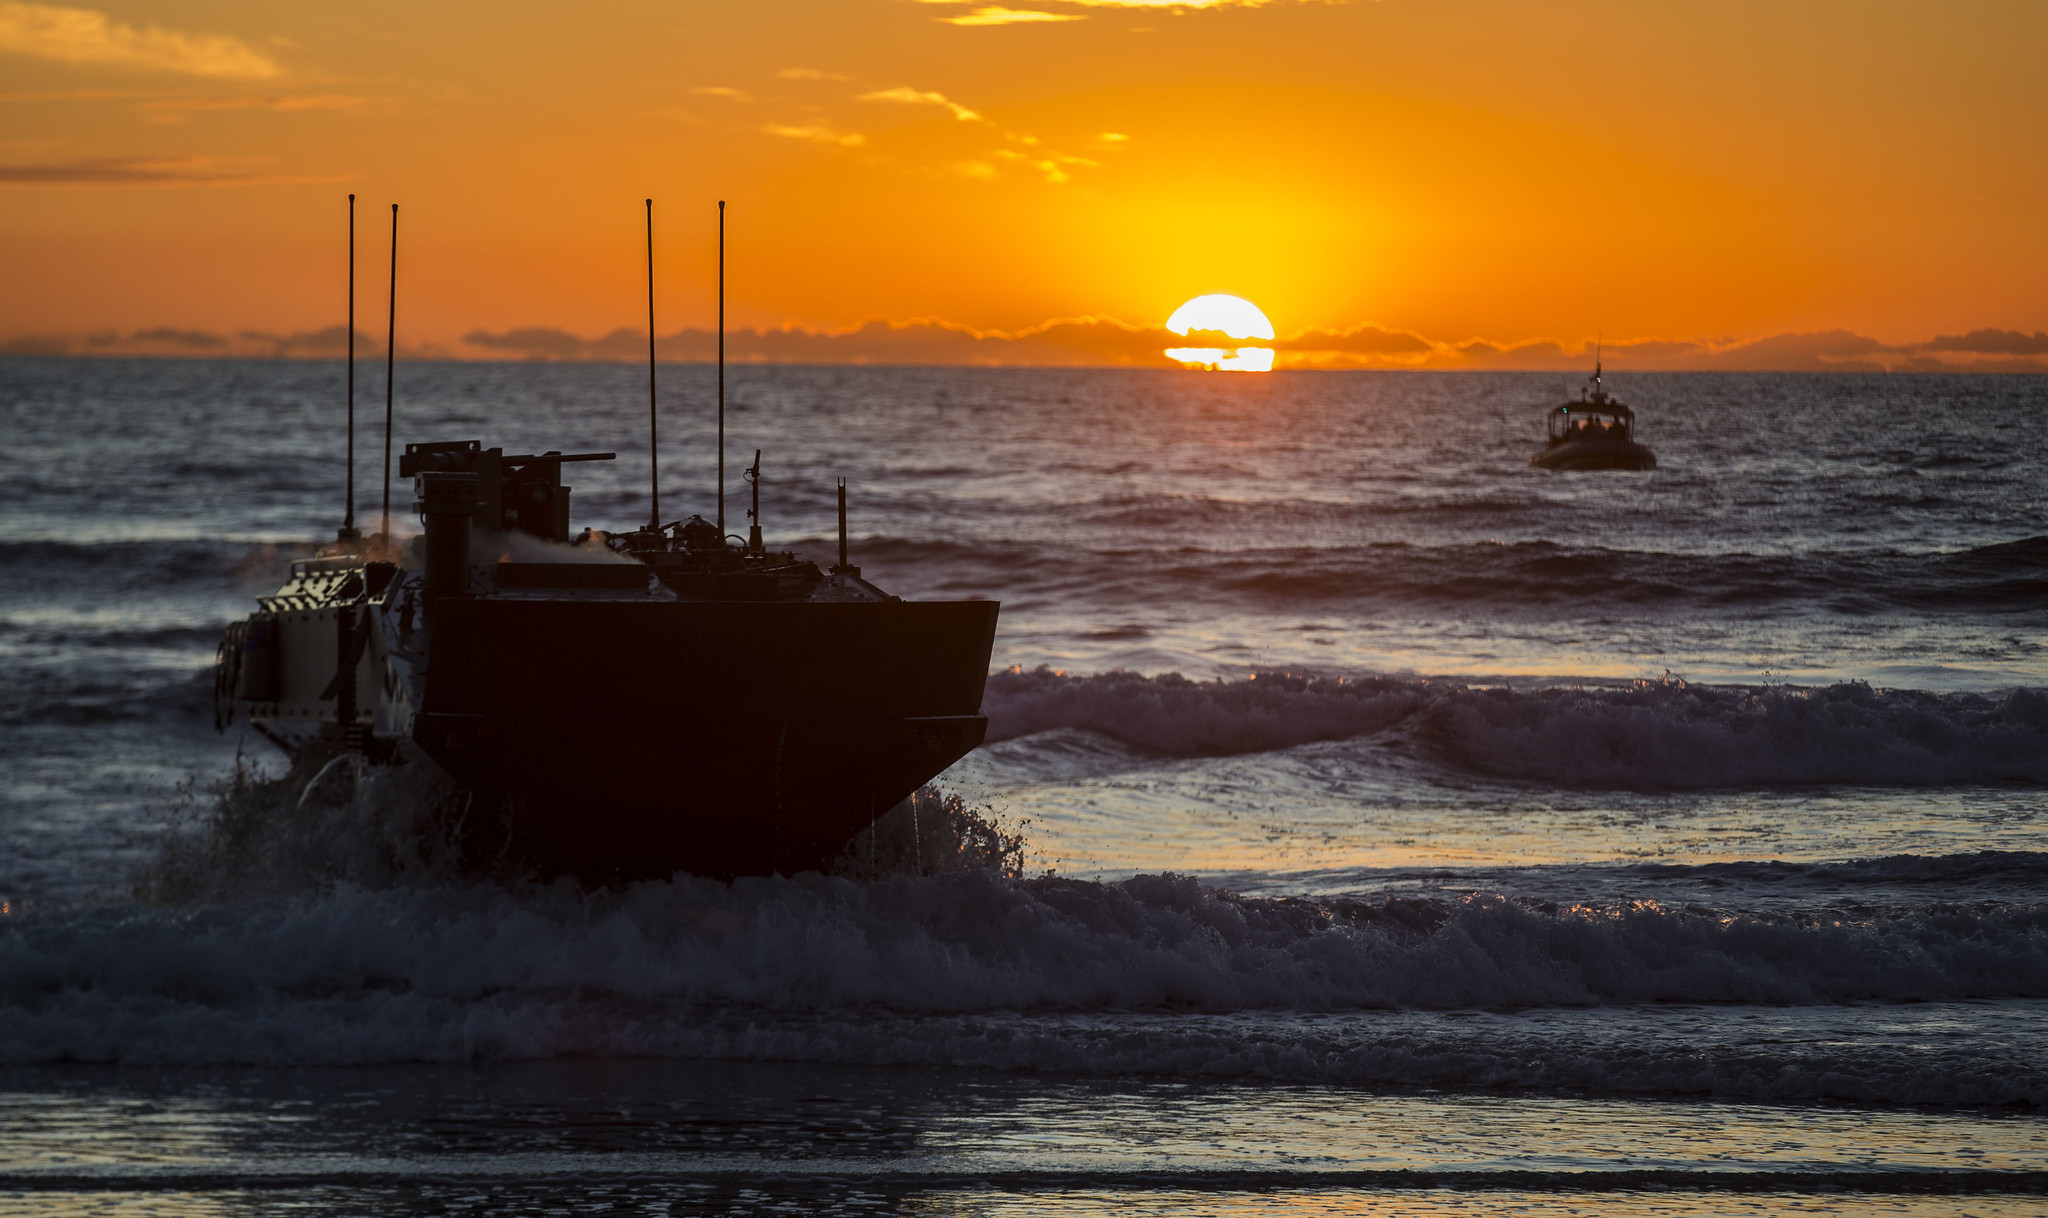 Marines with Amphibious Vehicle Test Branch, Marine Corps Tactical Systems Support Activity, drive a new amphibious combat vehicle ashore Dec. 18, 2019, during low-light surf transit testing at AVTB Beach at Marine Corps Base Camp Pendleton, Calif. (Lance Cpl. Andrew Cortez/Marine Corps)